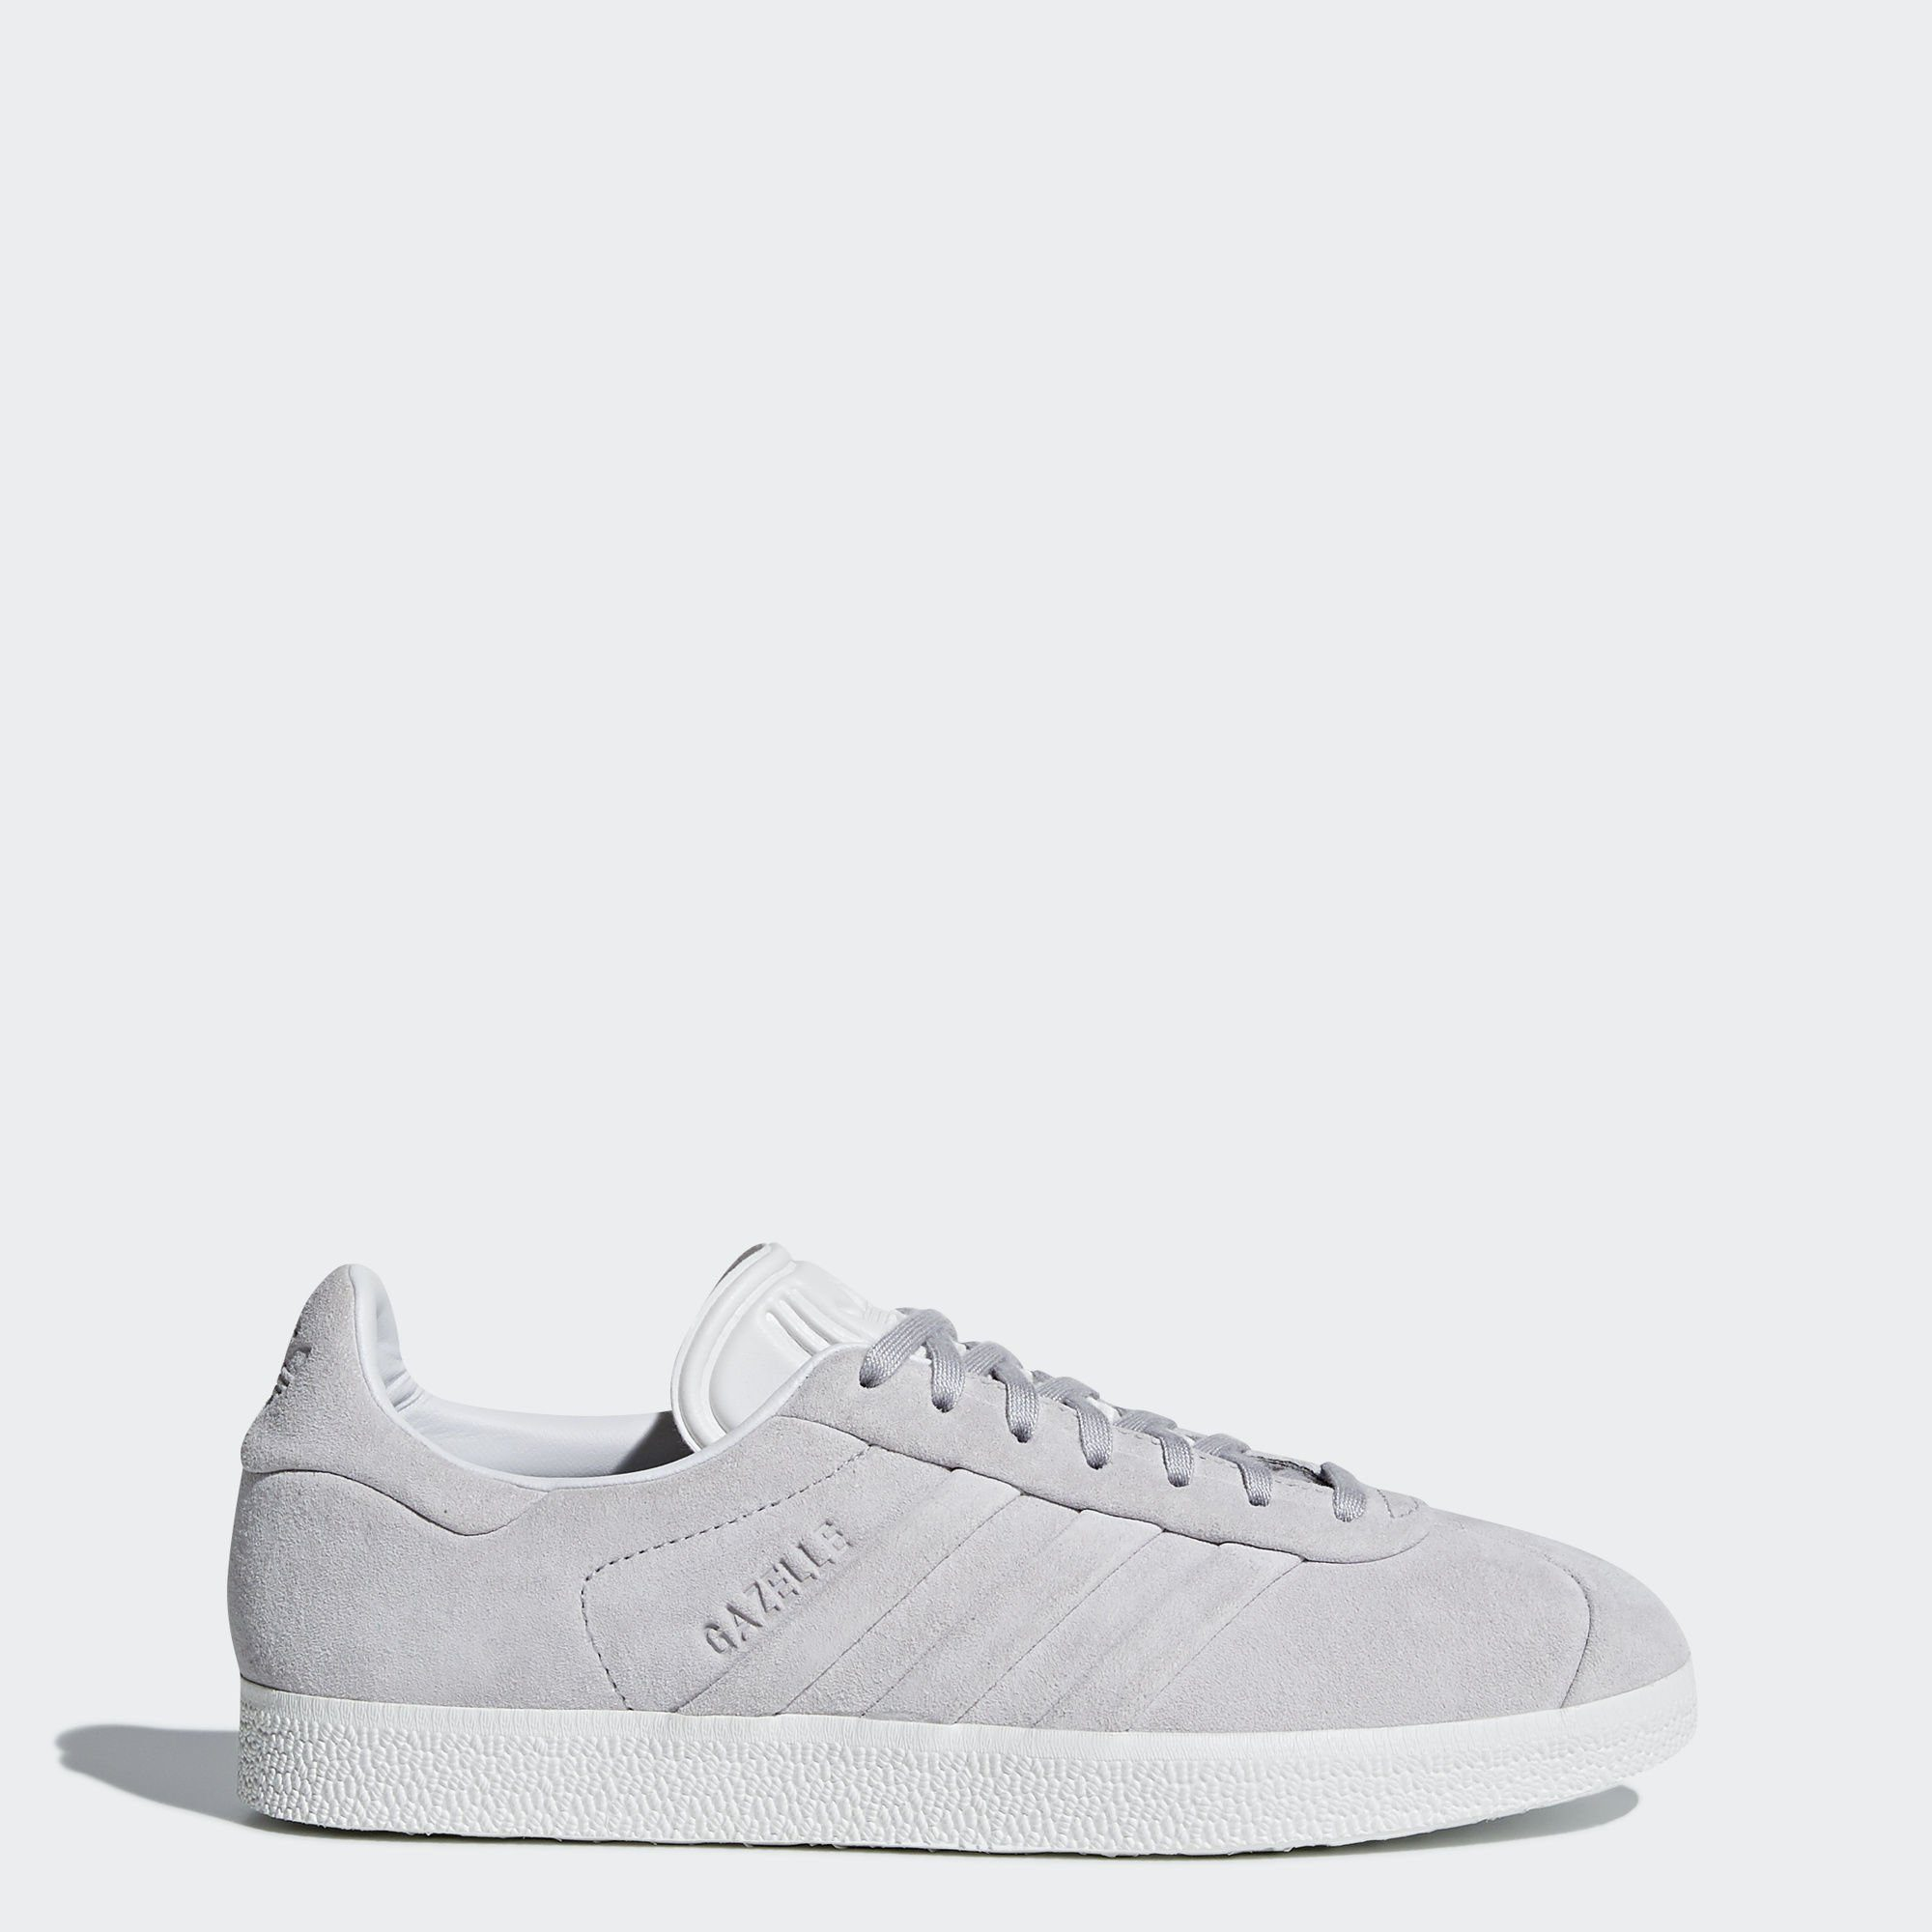 adidas Originals Gazelle Stitch and Turn Schuh Sneaker online kaufen  grey